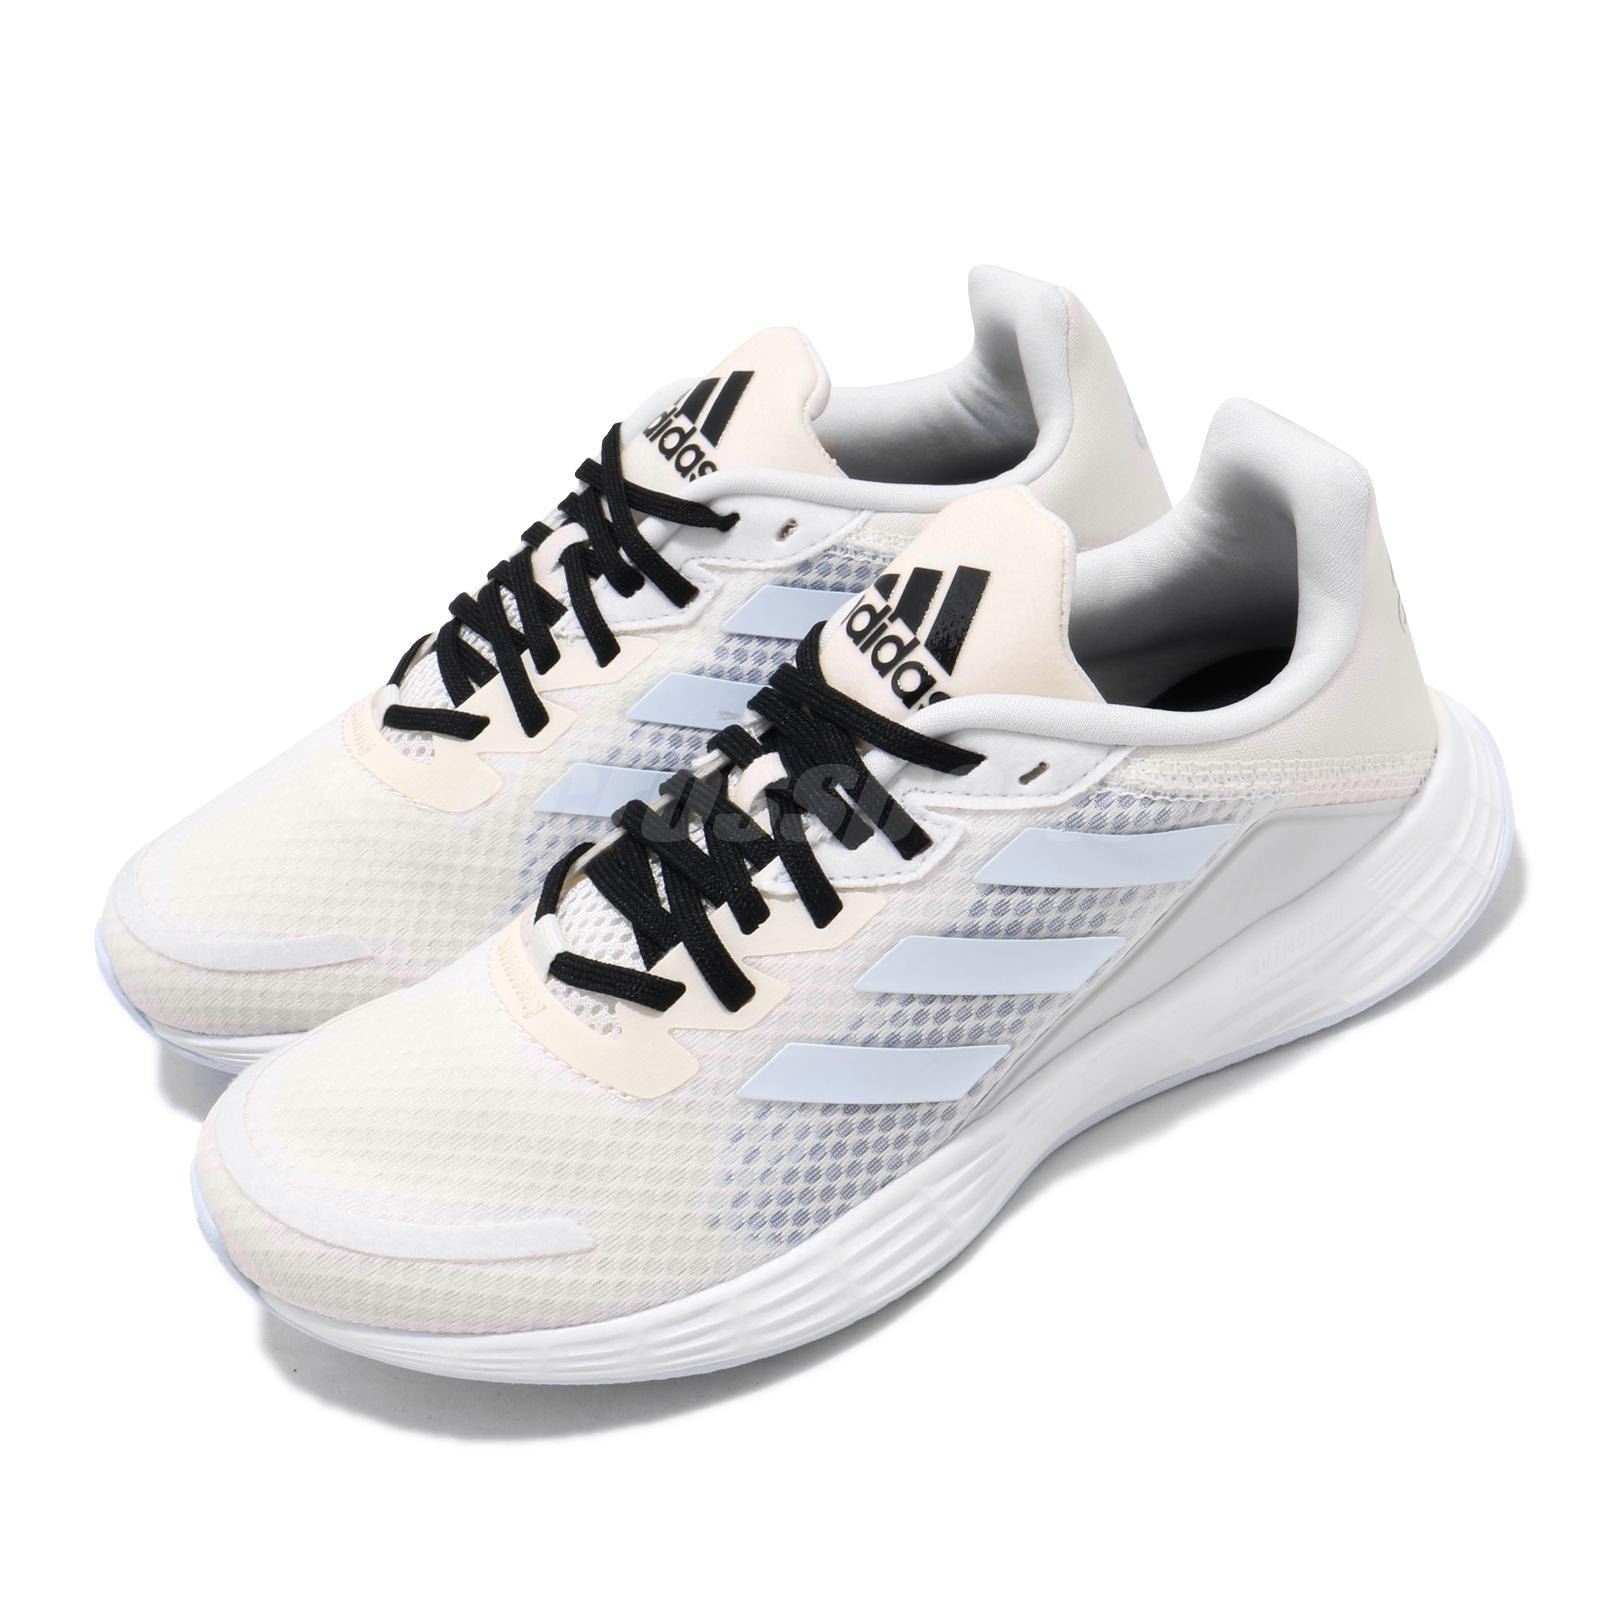 Details about adidas Duramo SL Beige Blue White Black Women Running Shoes  Sneakers FV8876